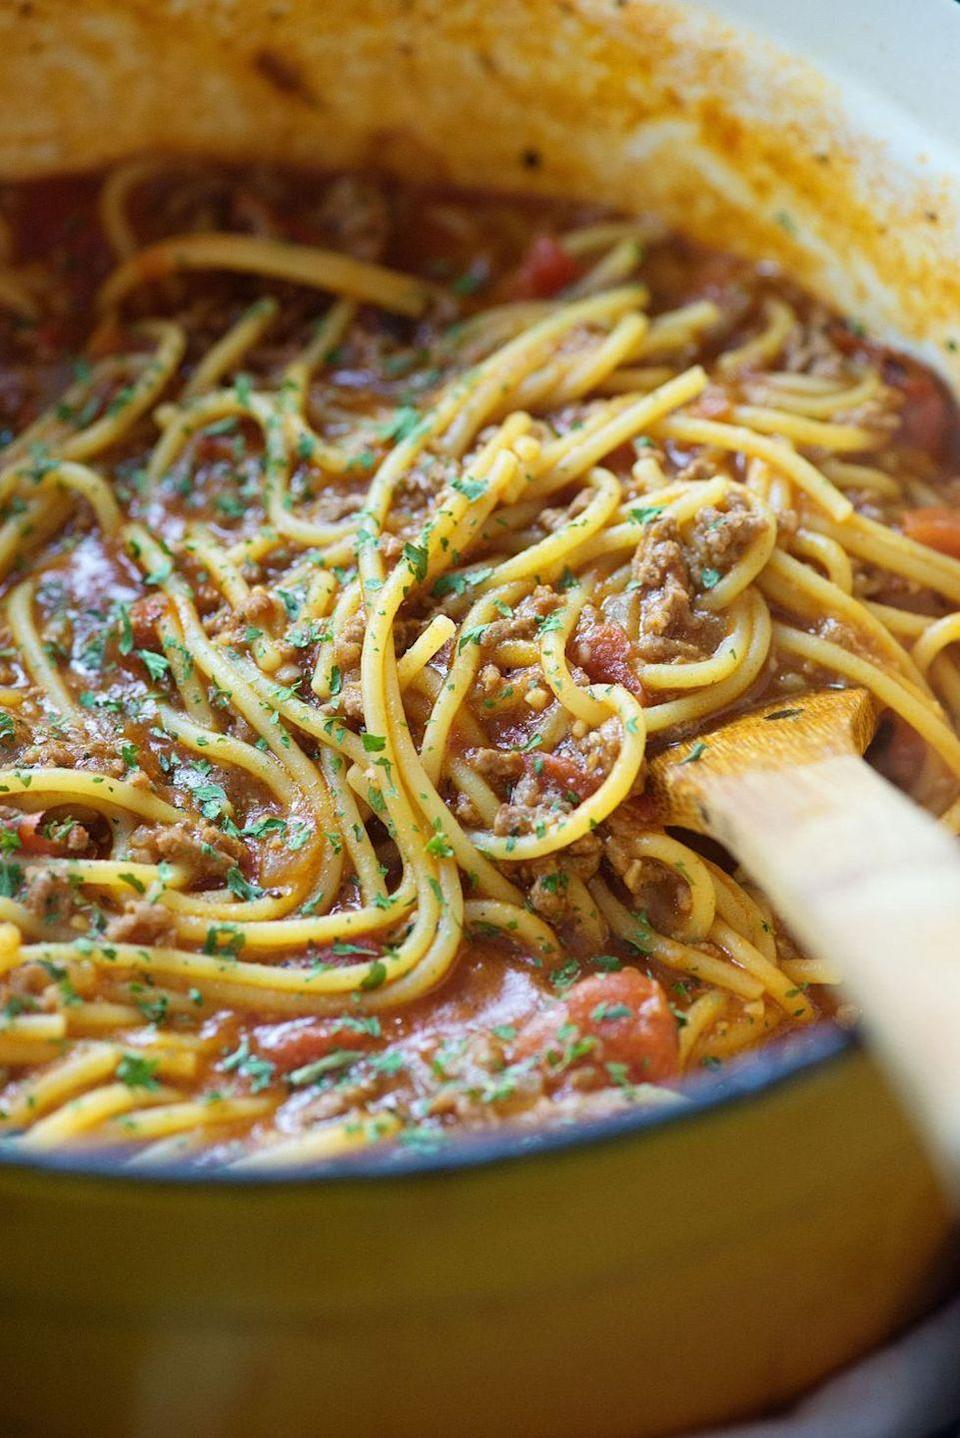 """<p>The less dishes to wash, the better.</p><p>Get the <a href=""""https://www.delish.com/uk/cooking/recipes/a32751555/one-pot-spaghetti-recipe/"""" rel=""""nofollow noopener"""" target=""""_blank"""" data-ylk=""""slk:One-Pot Spaghetti"""" class=""""link rapid-noclick-resp"""">One-Pot Spaghetti</a> recipe.</p>"""